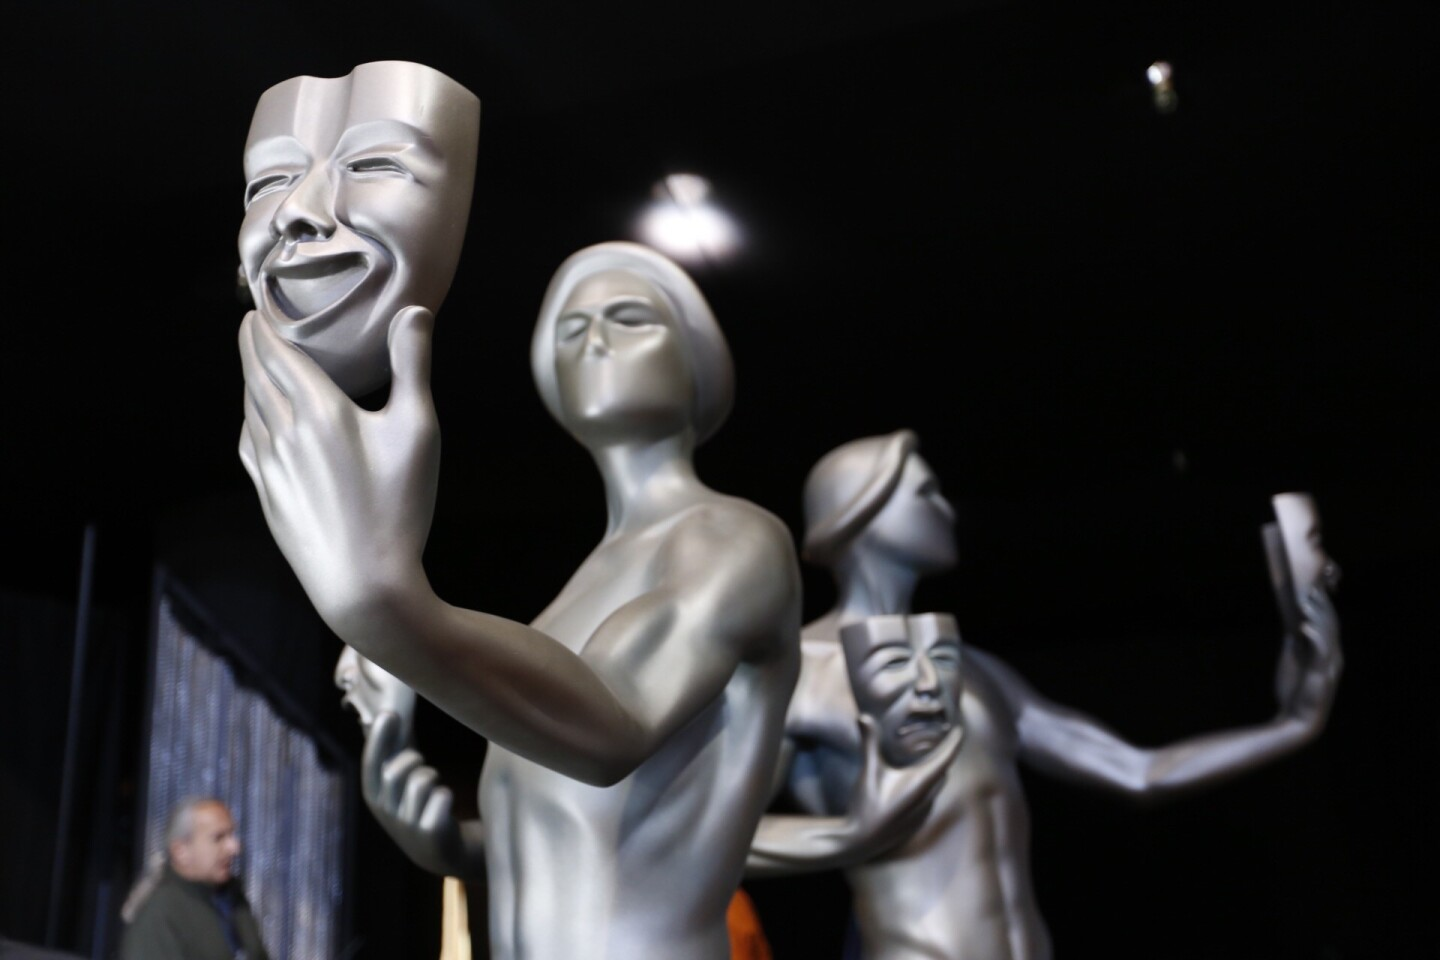 Staging the Screen Actors Guild Awards